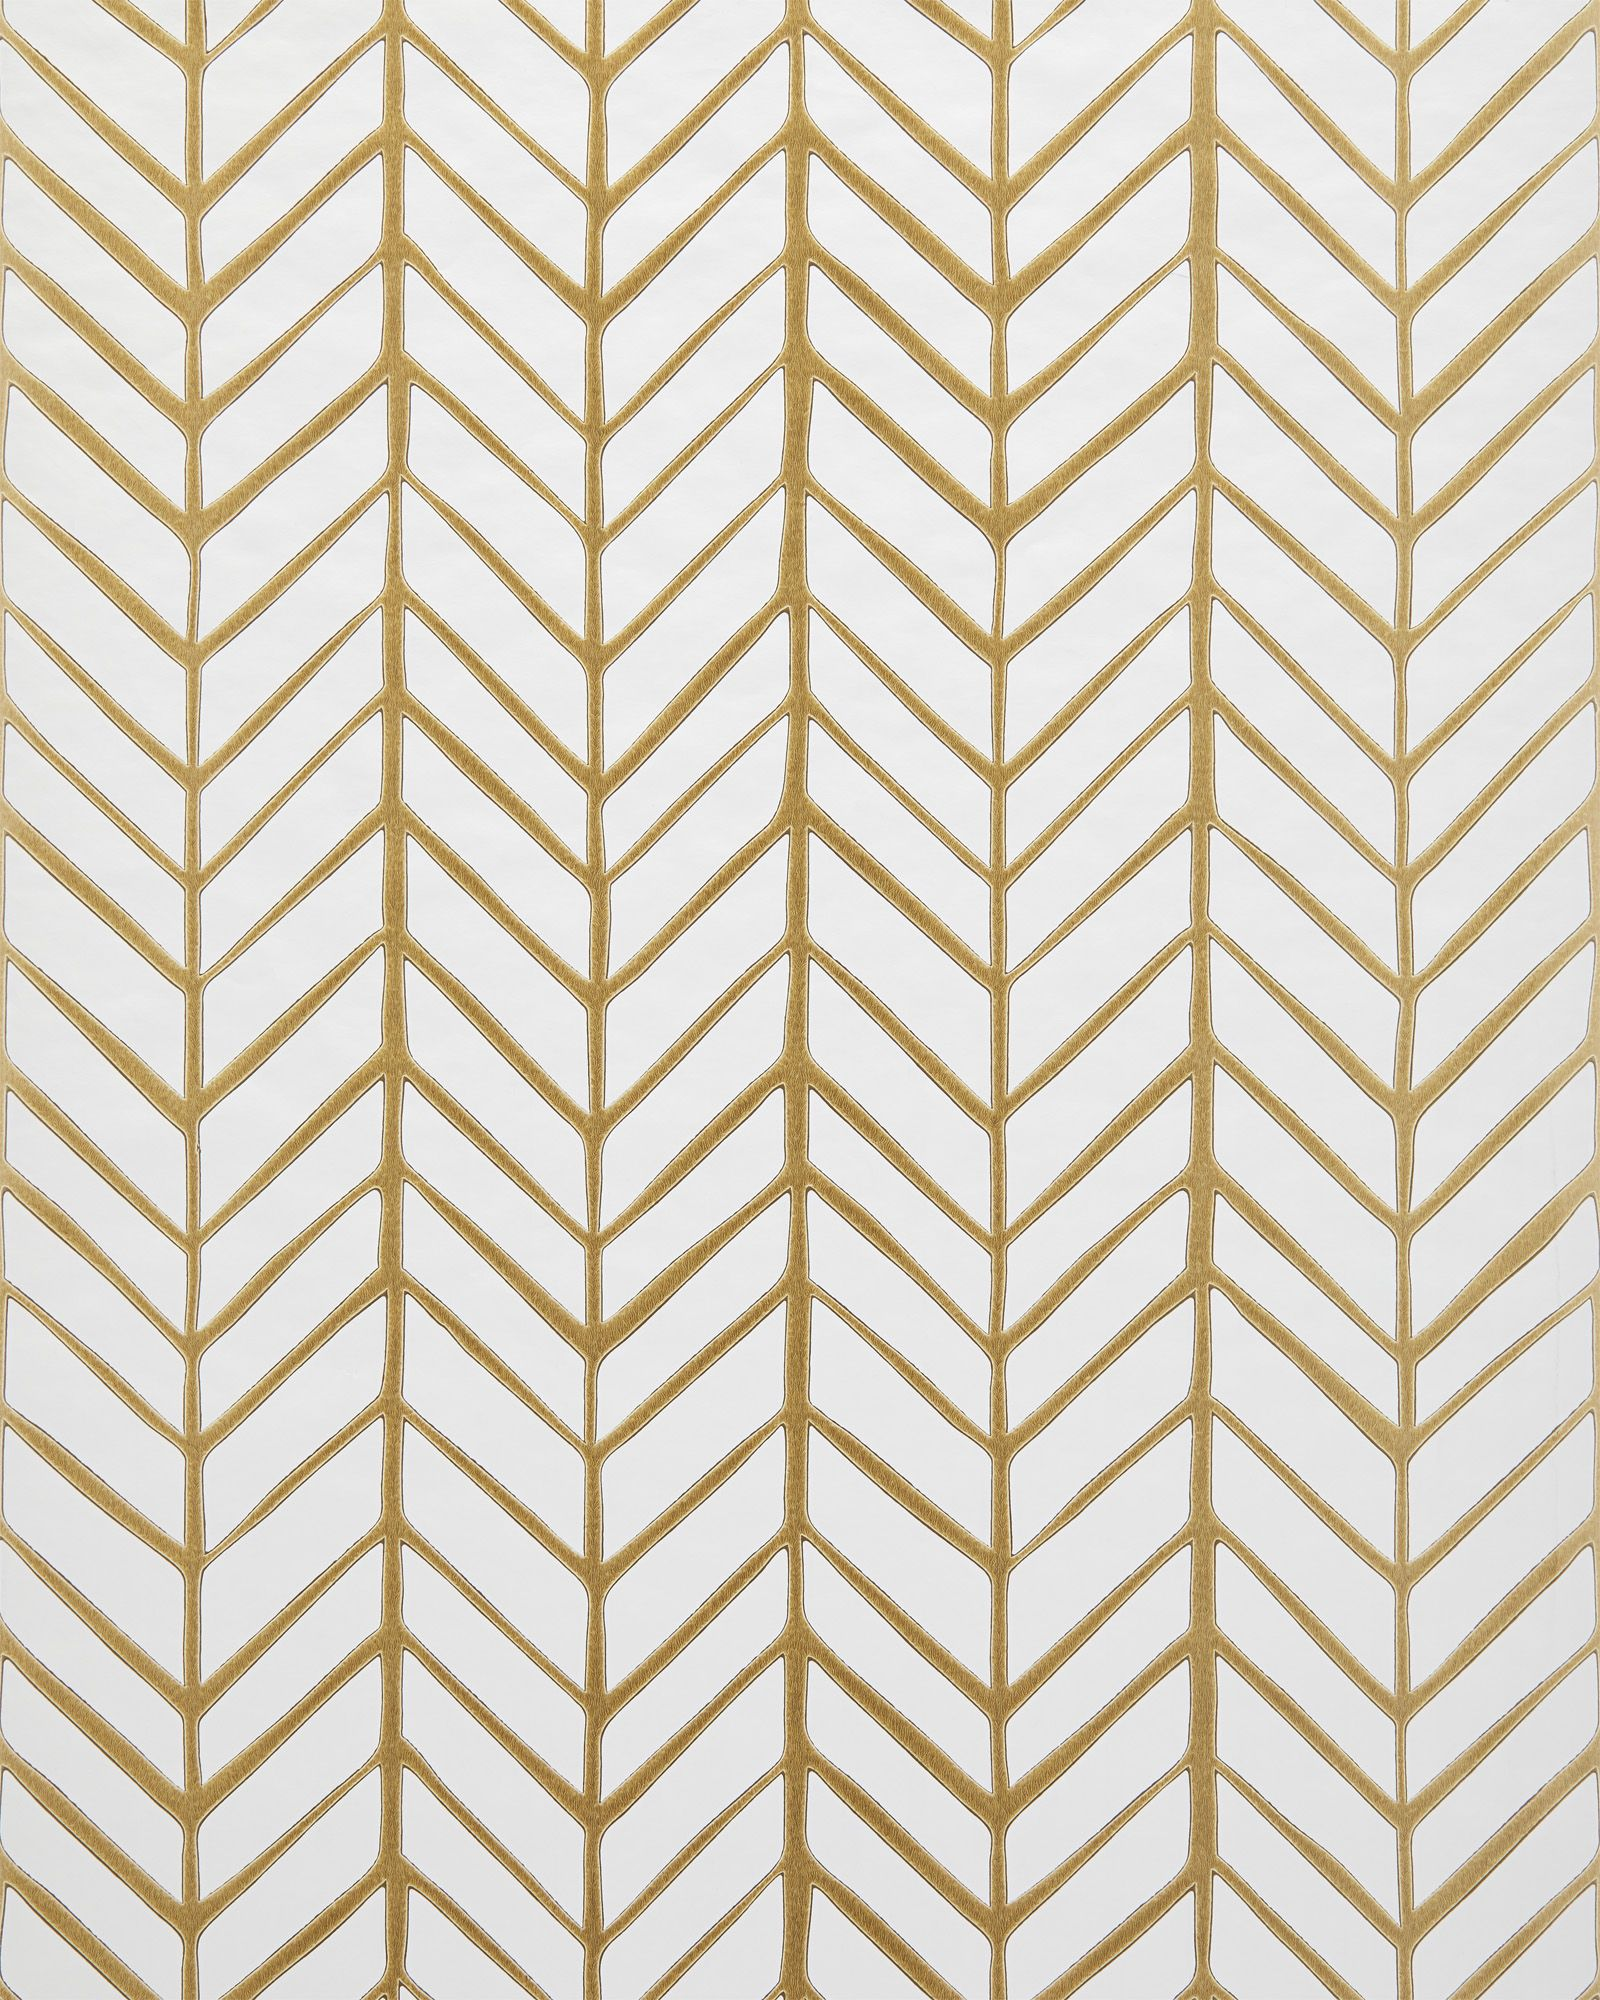 Feather Wallpaper Gold In 2021 Feather Wallpaper Gold Chevron Wallpaper Chevron Wallpaper